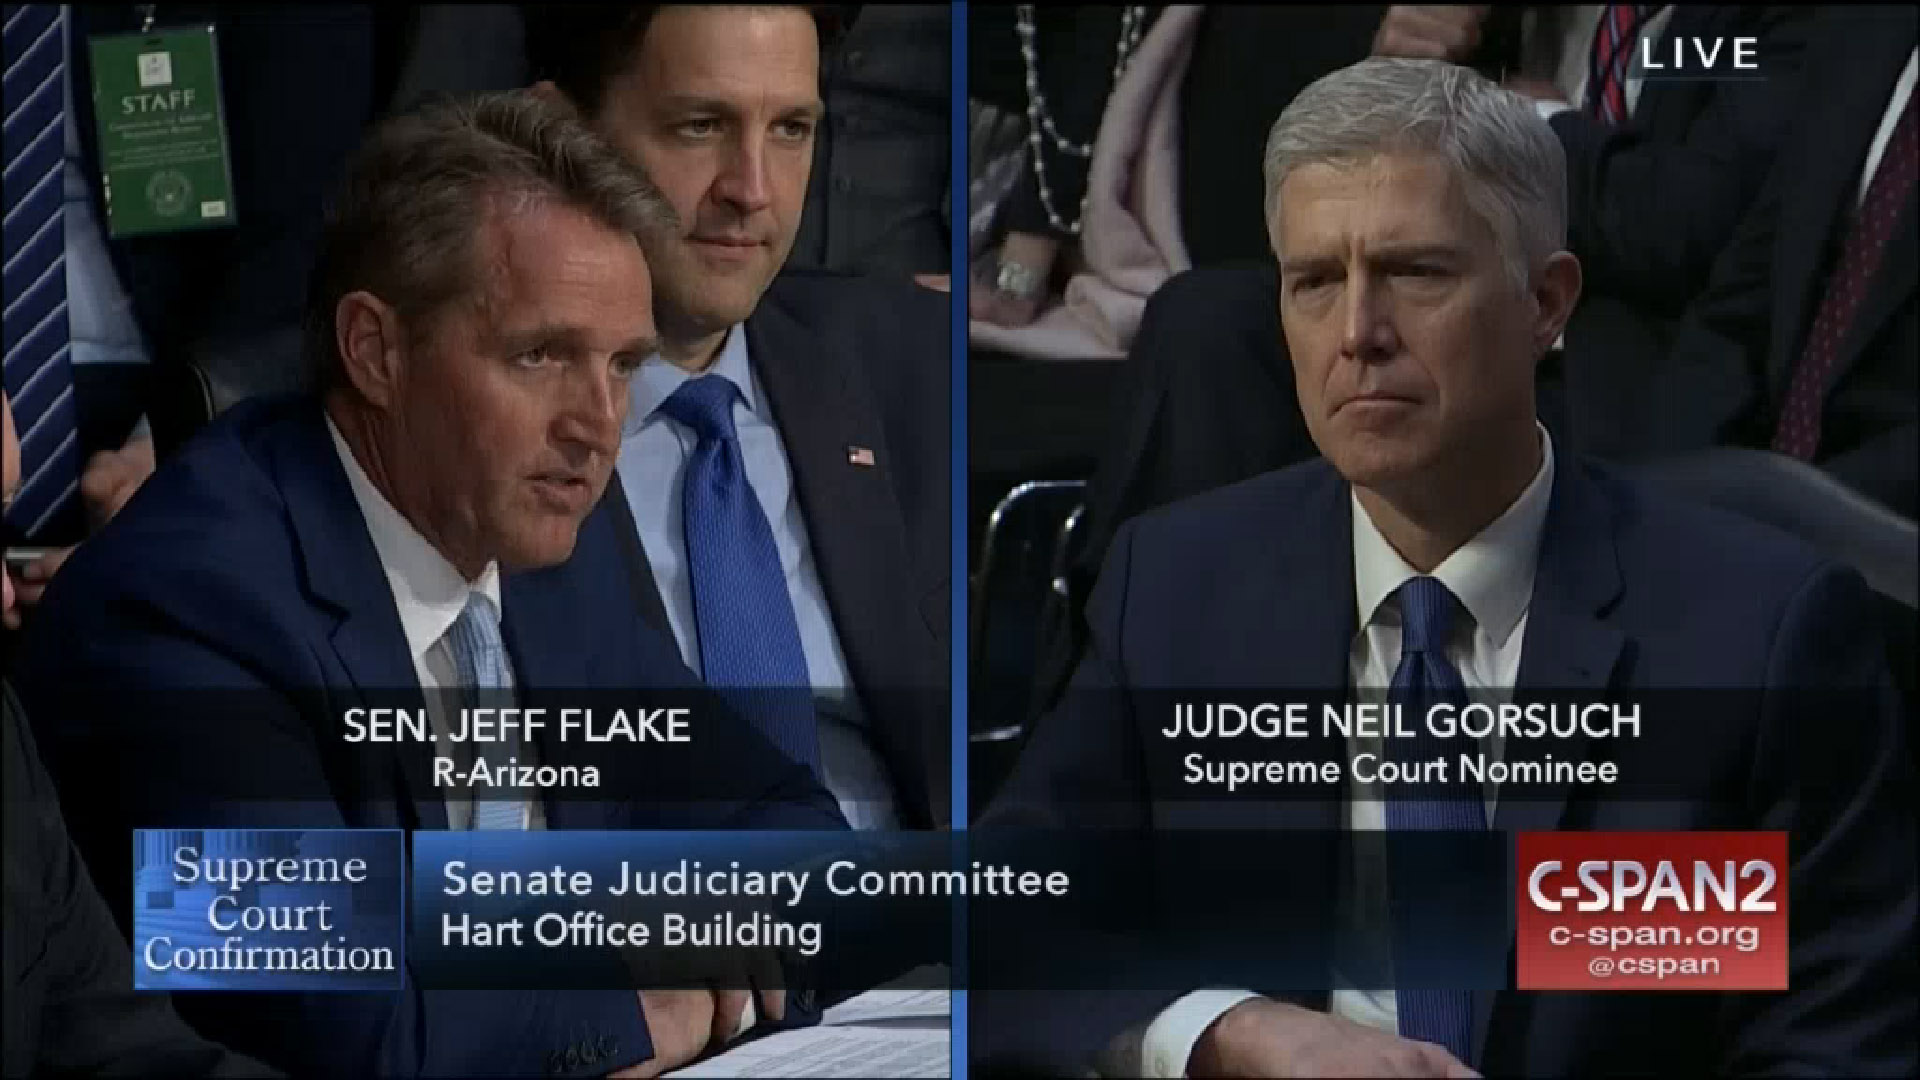 U.S. Senator Jeff Flake, R-Ariz., speaks at confirmation hearings of Supreme Court nominee Neil Gorsuch, March 20, 2017.